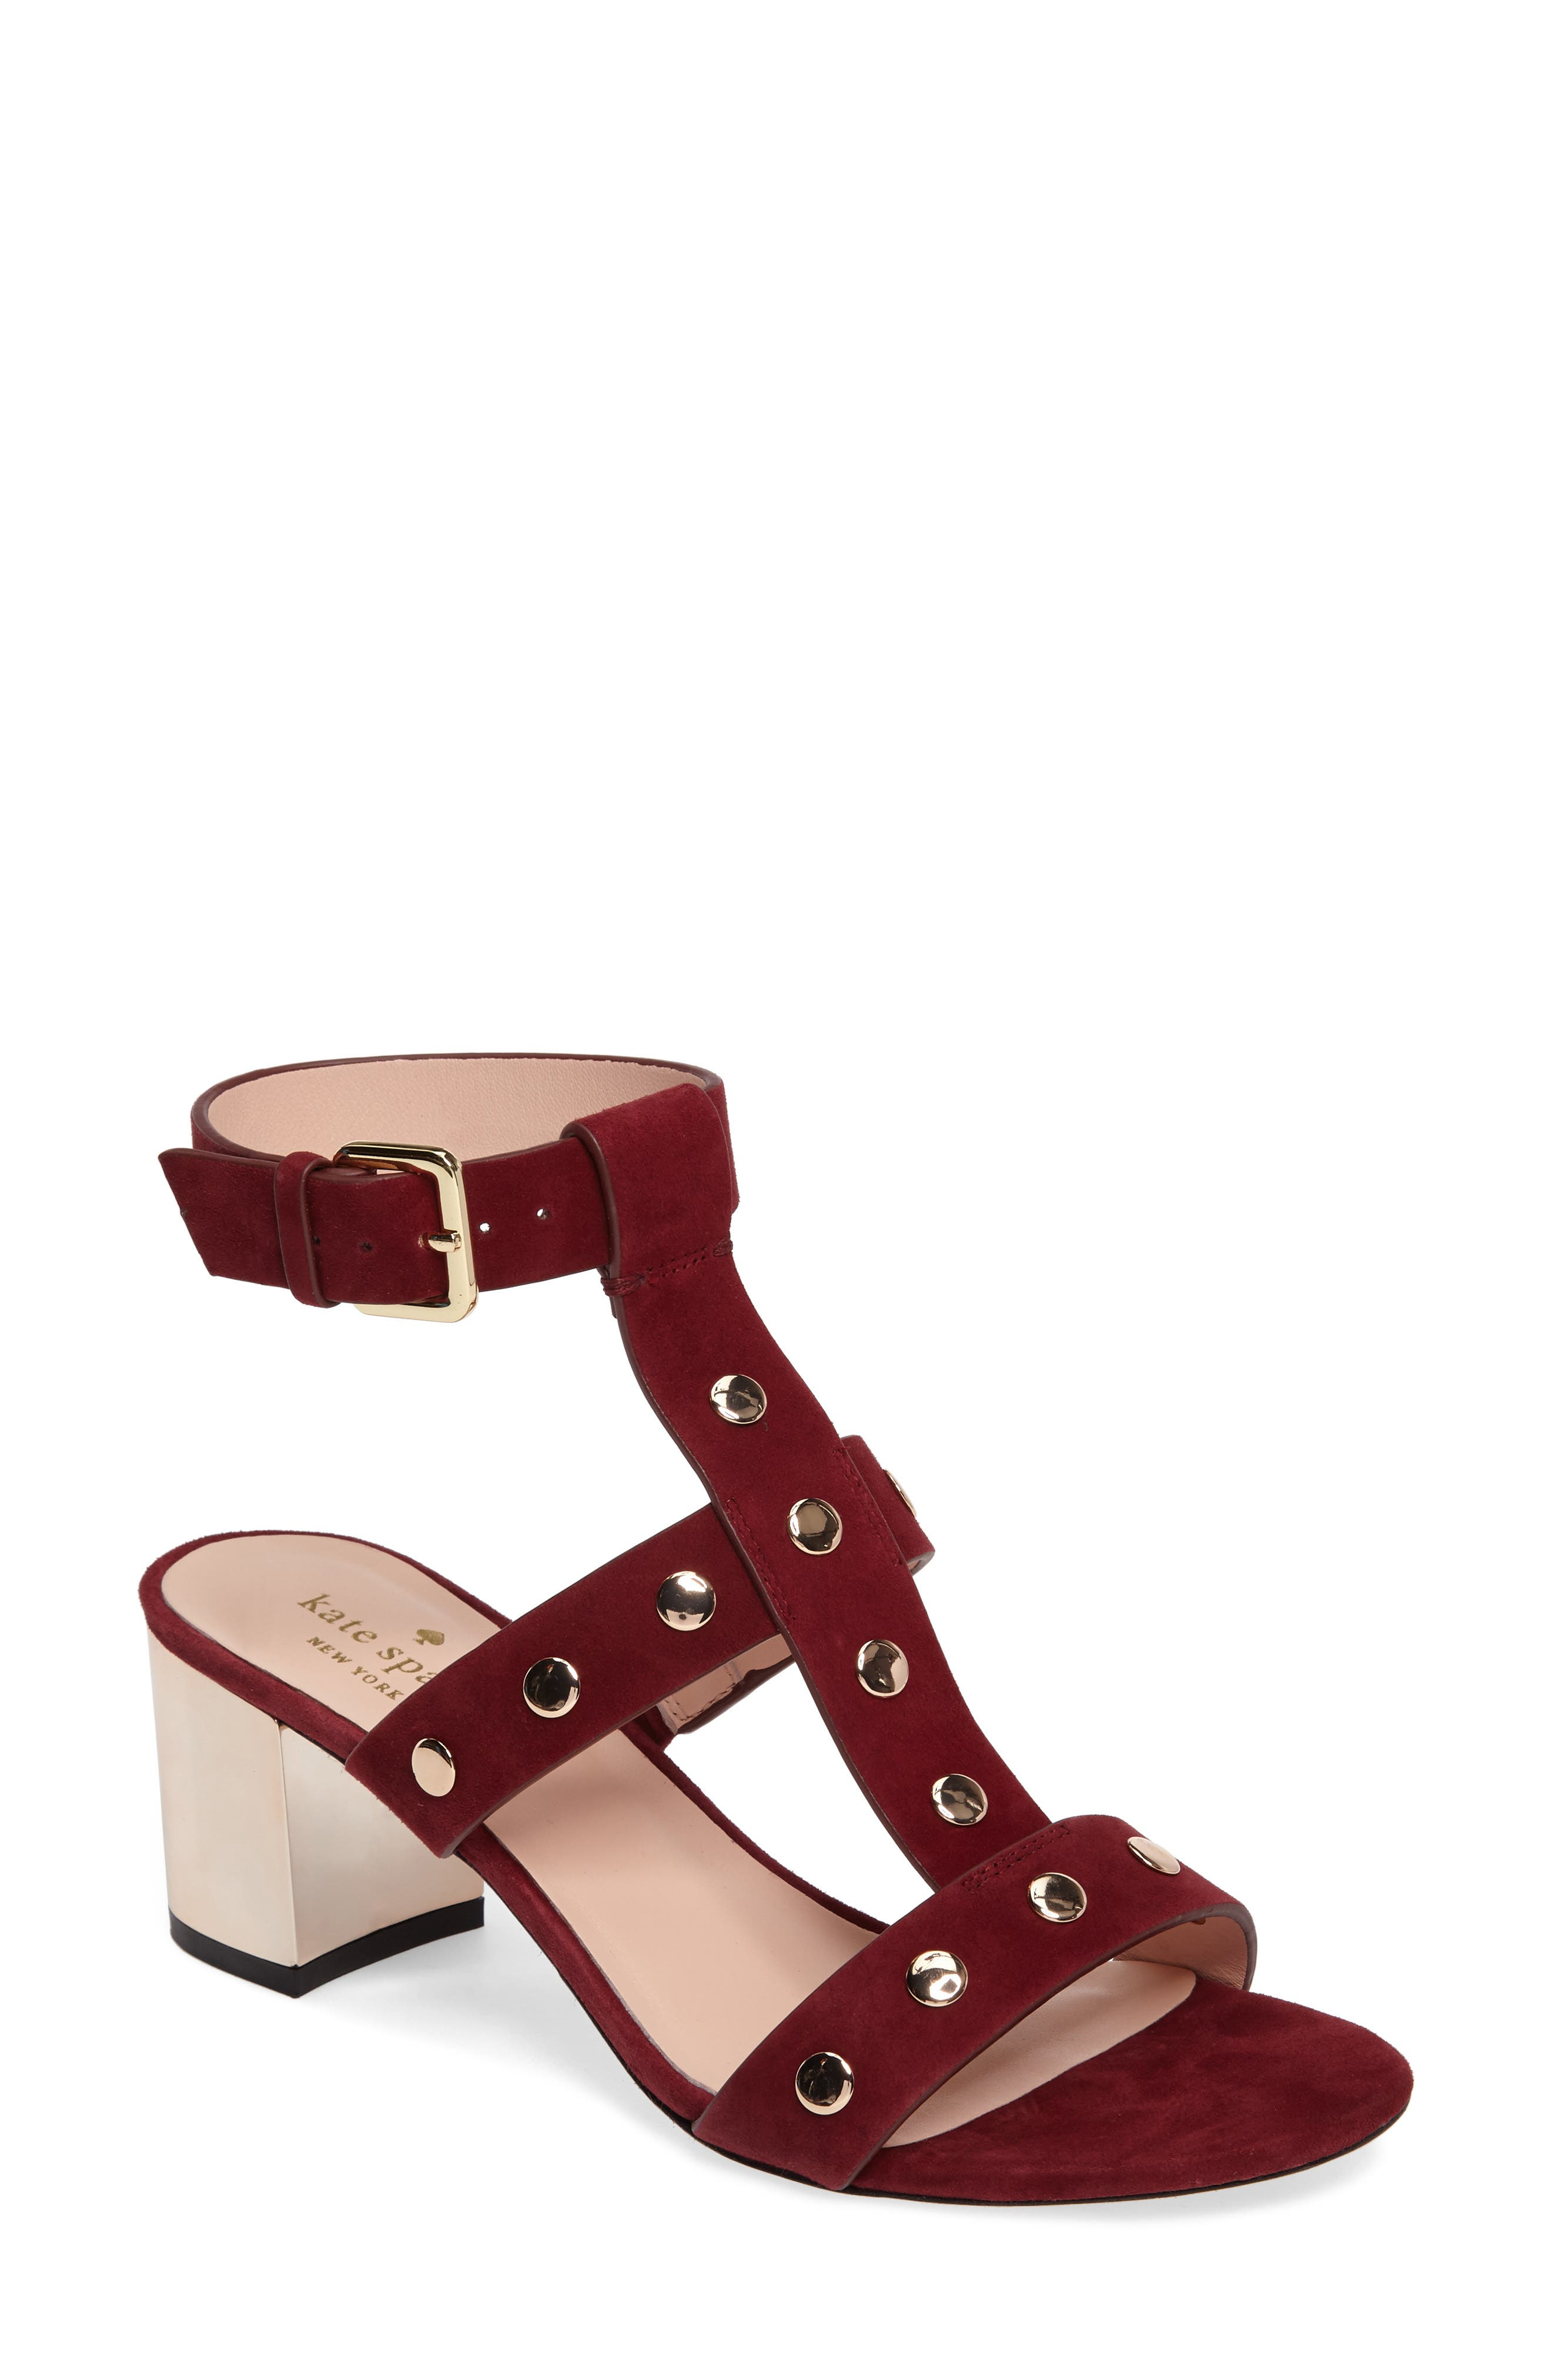 KATE SPADE NEW YORK welby t-strap sandal